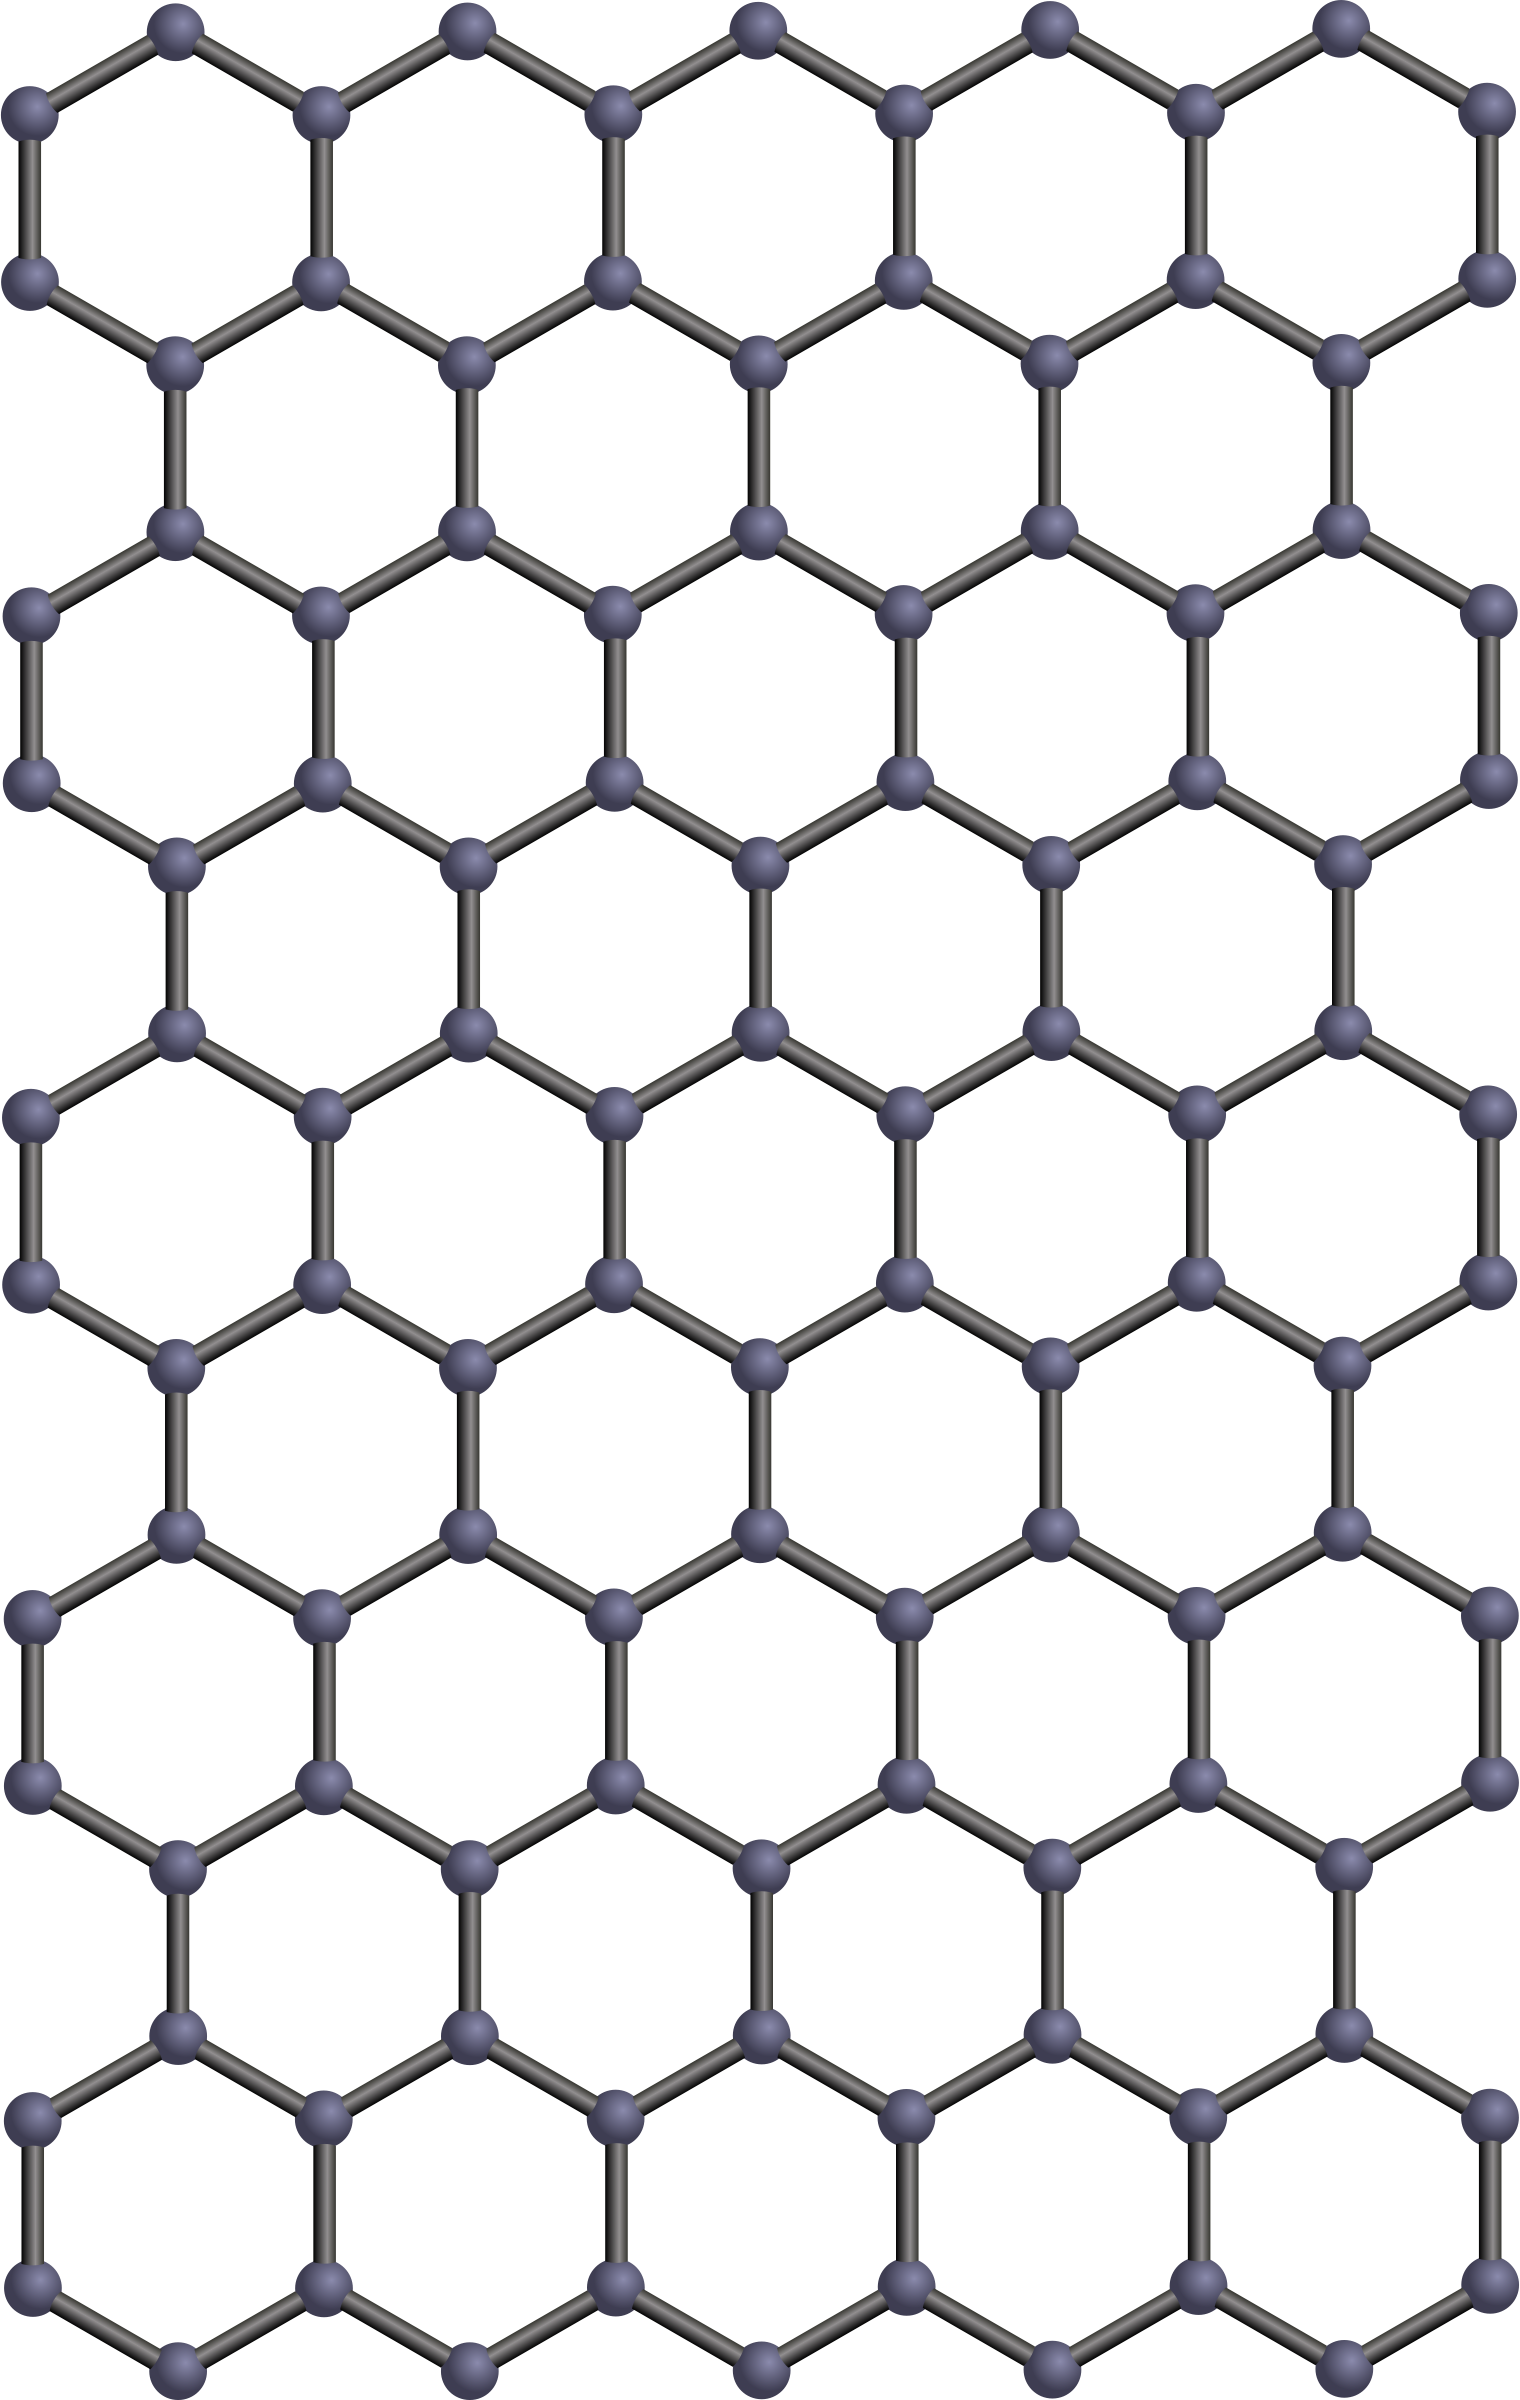 Graphene sheet by J_Alves